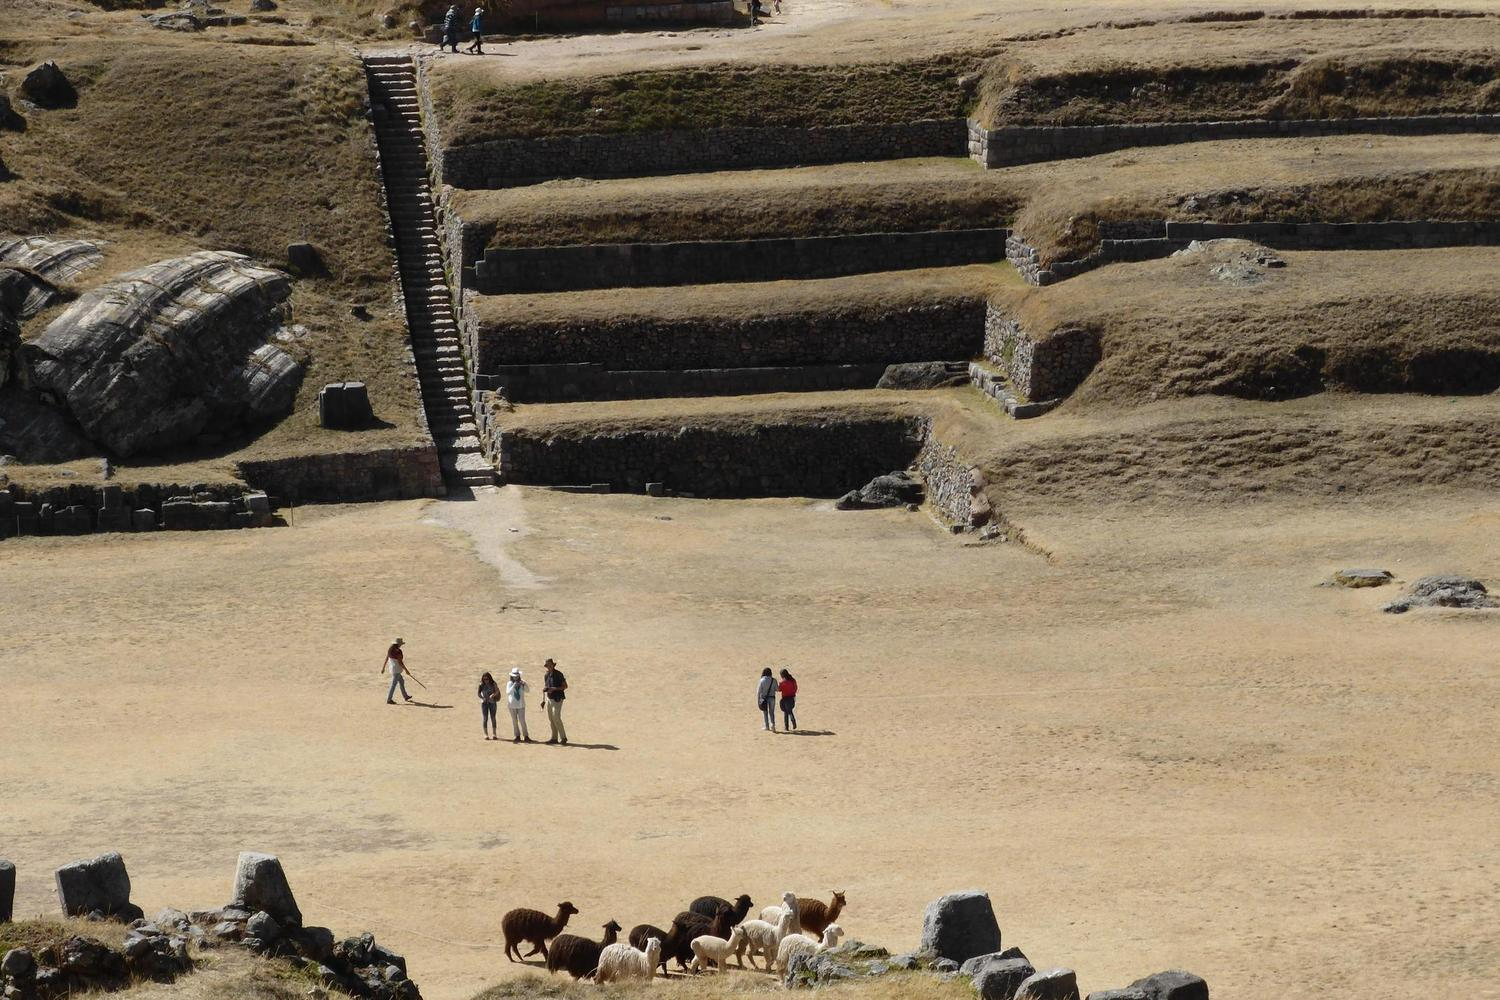 Llamas grazing in the Incan ruins of Sacsayhuaman near Cusco